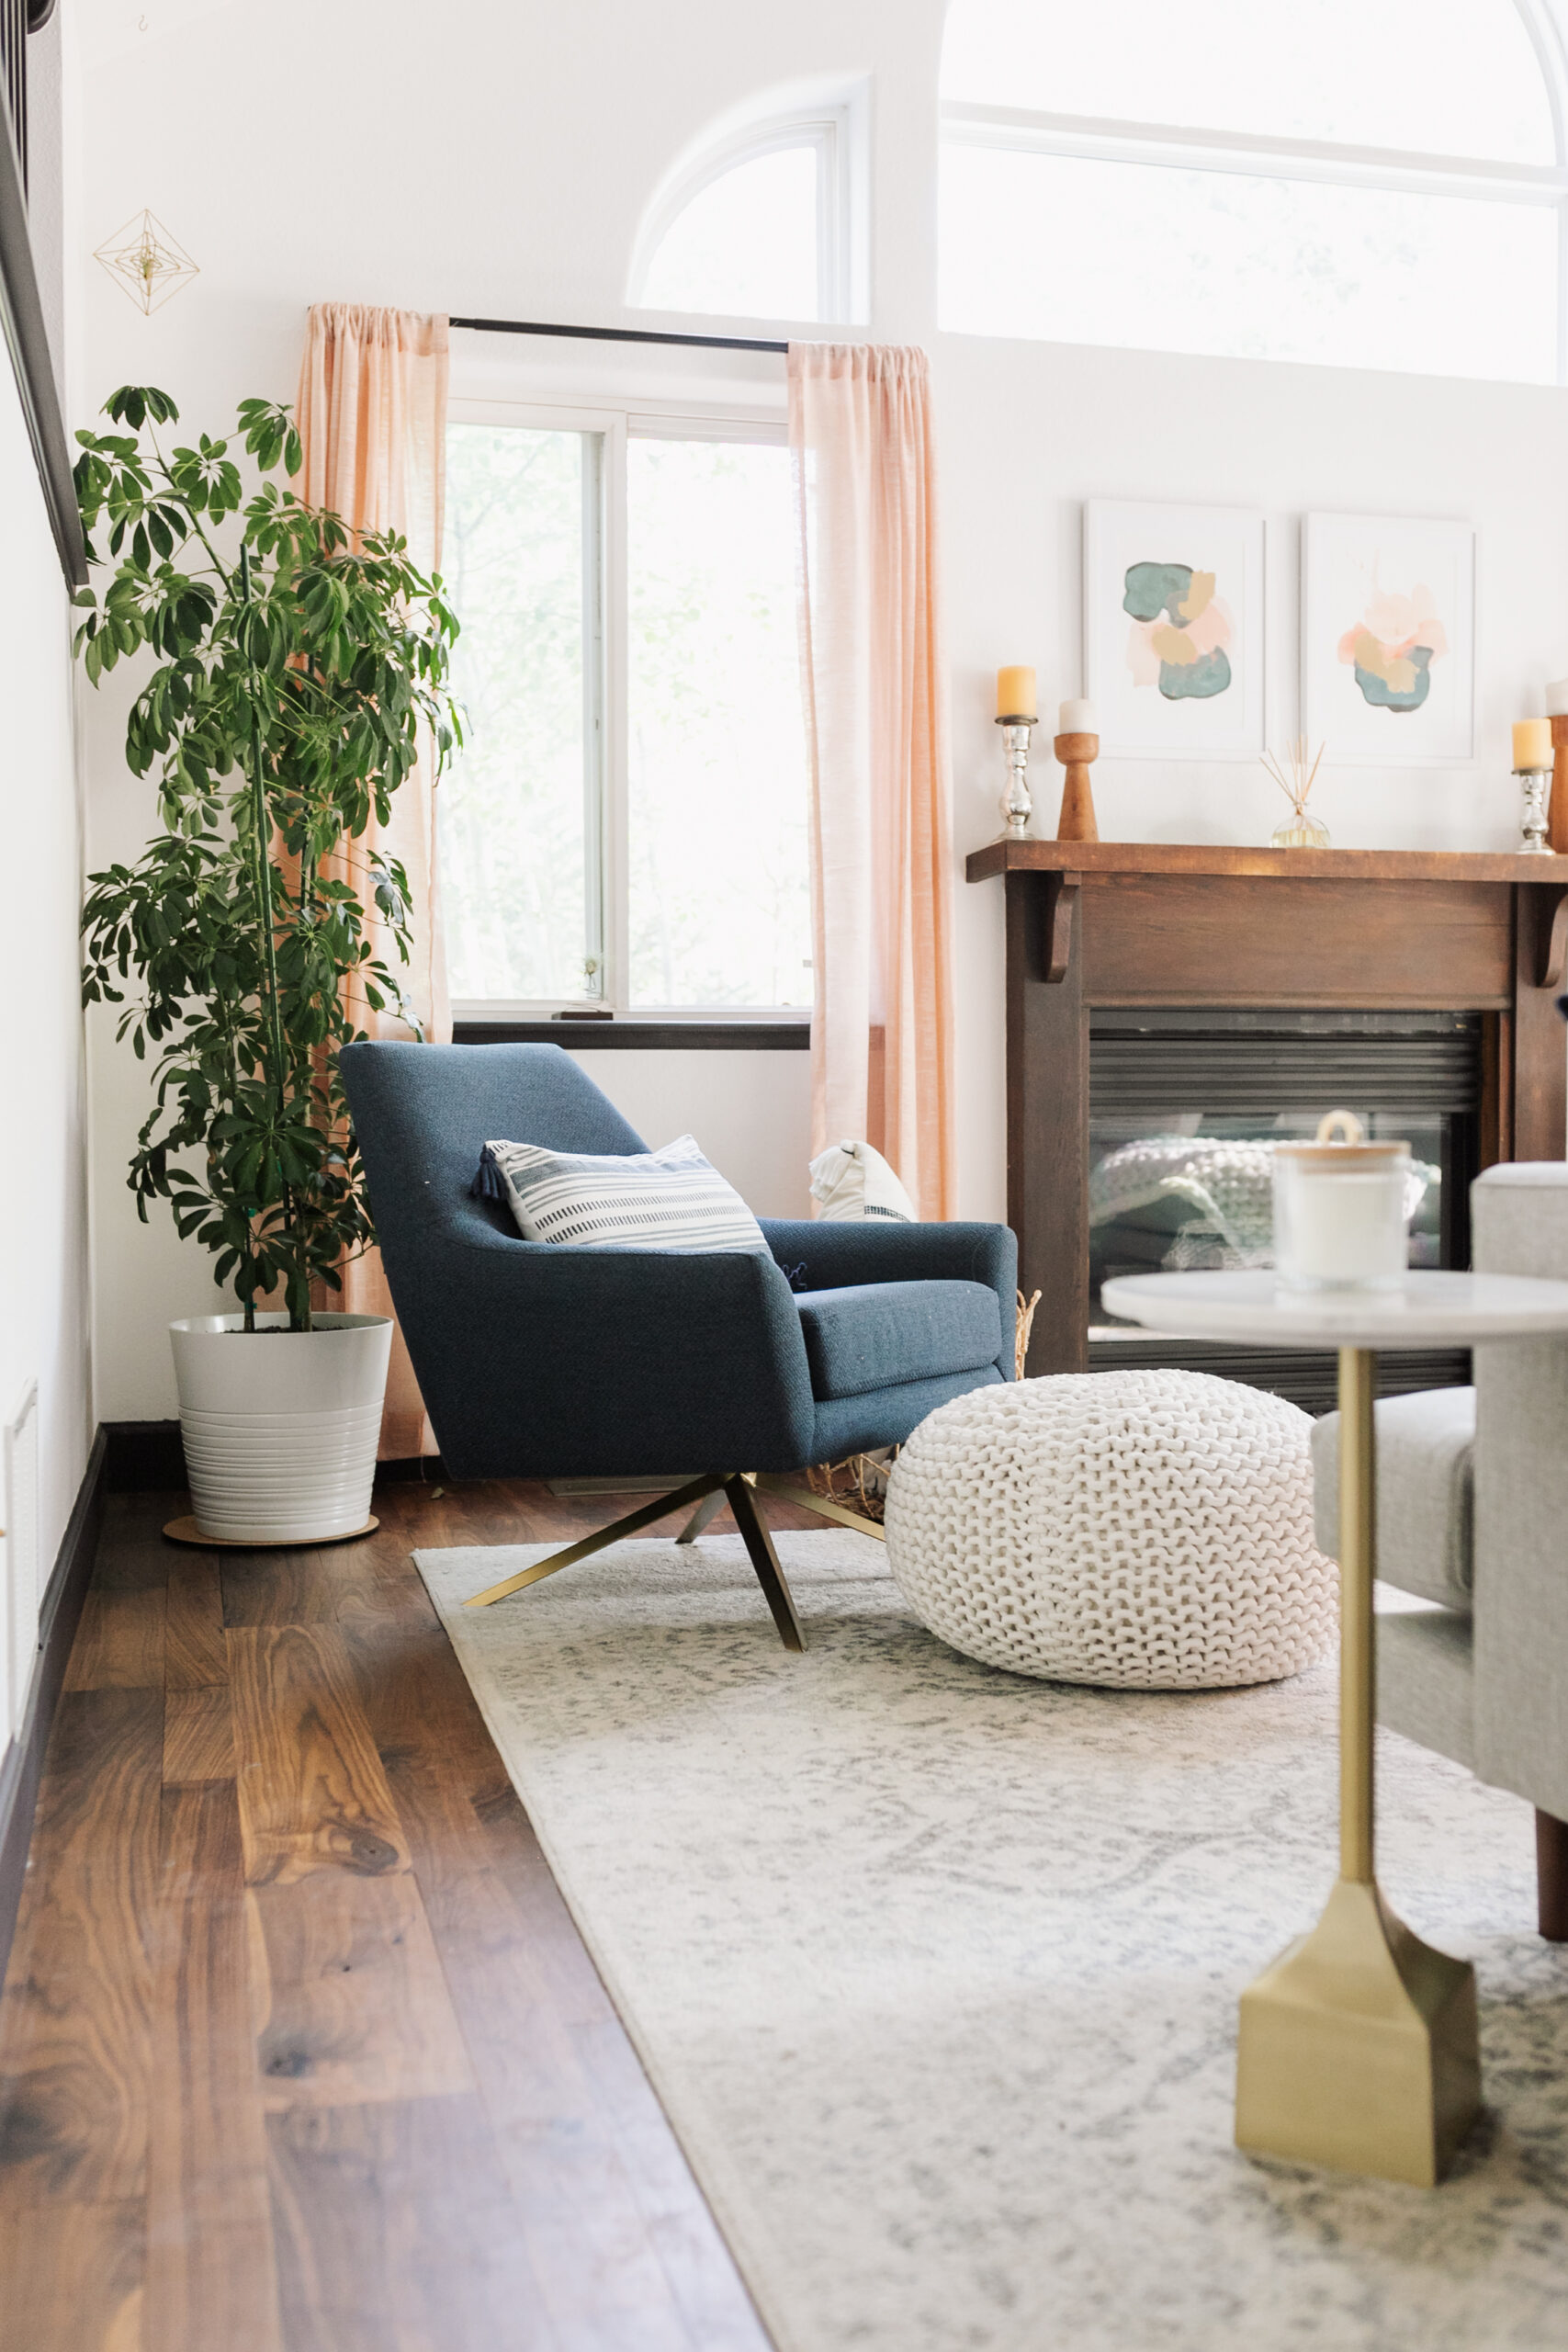 this functional ink blue swivel chair works perfectly in this multi-functional living room space #thelovedesignedlife #theldlhome #swivelchair #article #ourarticle #spininbluechair